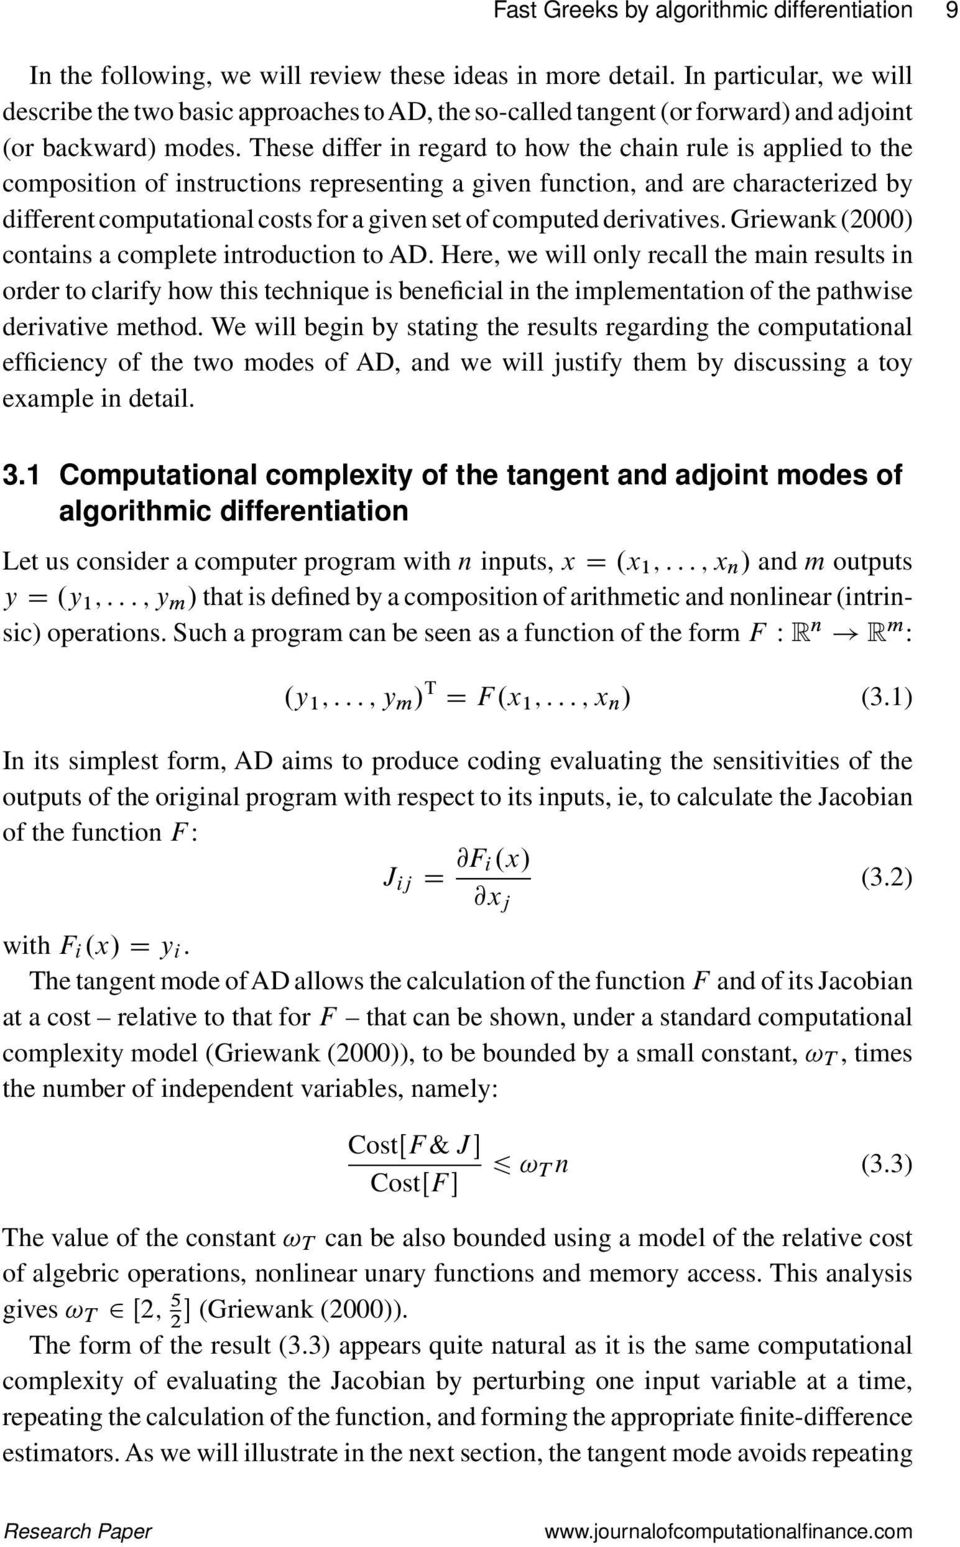 These differ in regard to how the chain rule is applied to the composition of instructions representing a given function, and are characterized by different computational costs for a given set of